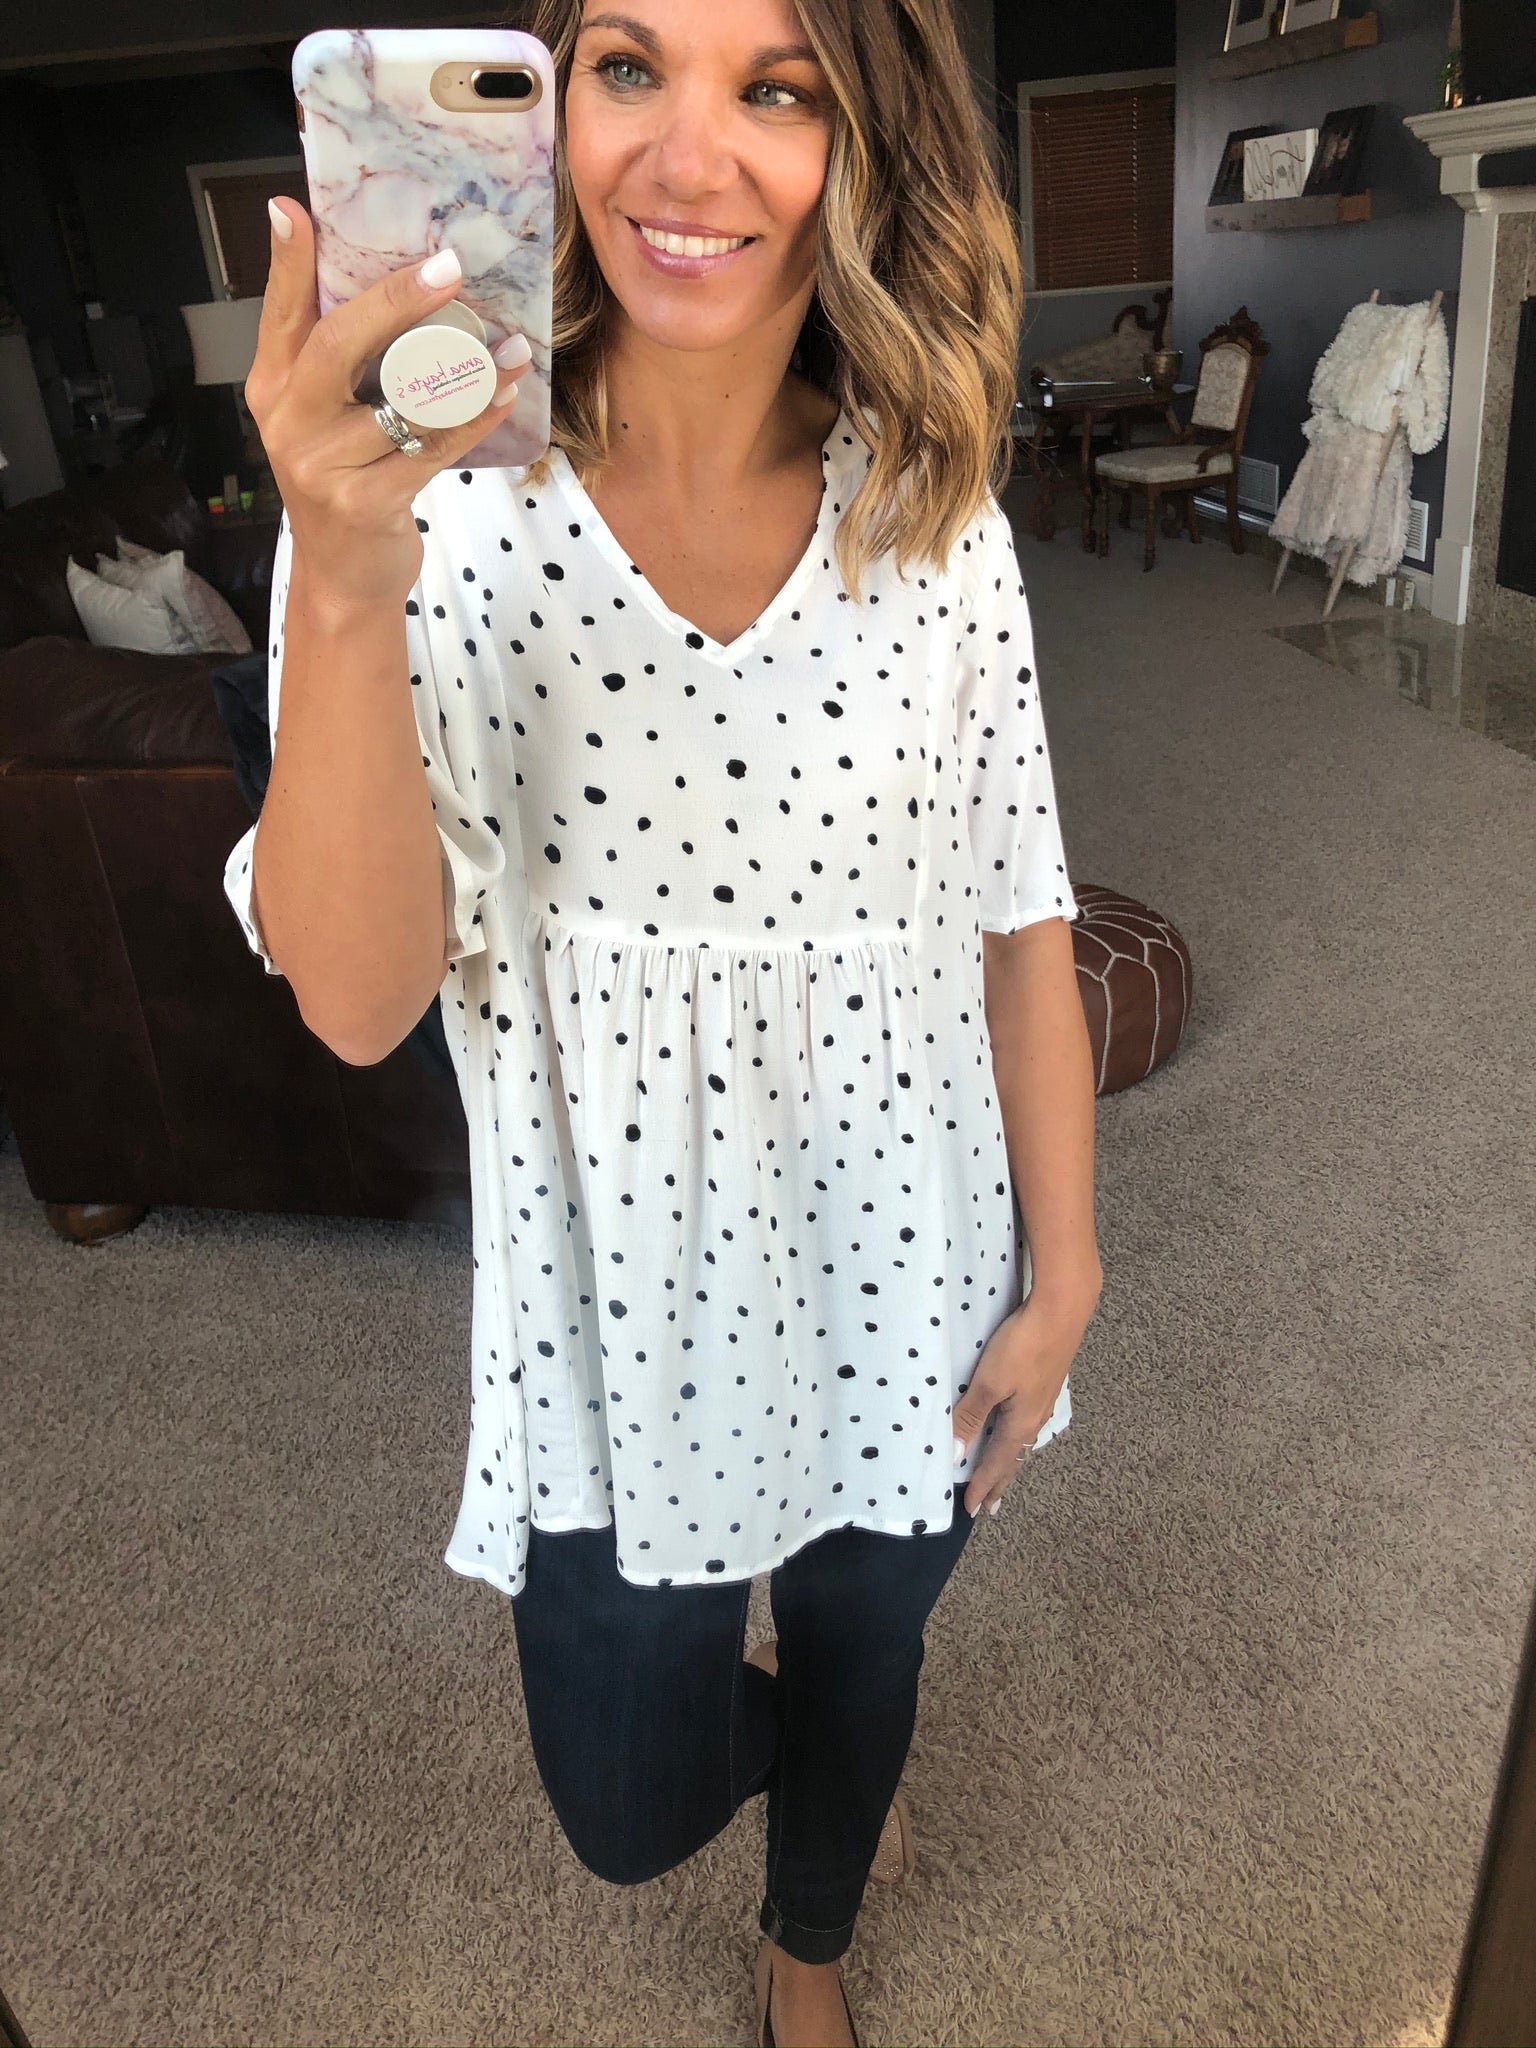 To The Point White Tee with Black Dotted Details